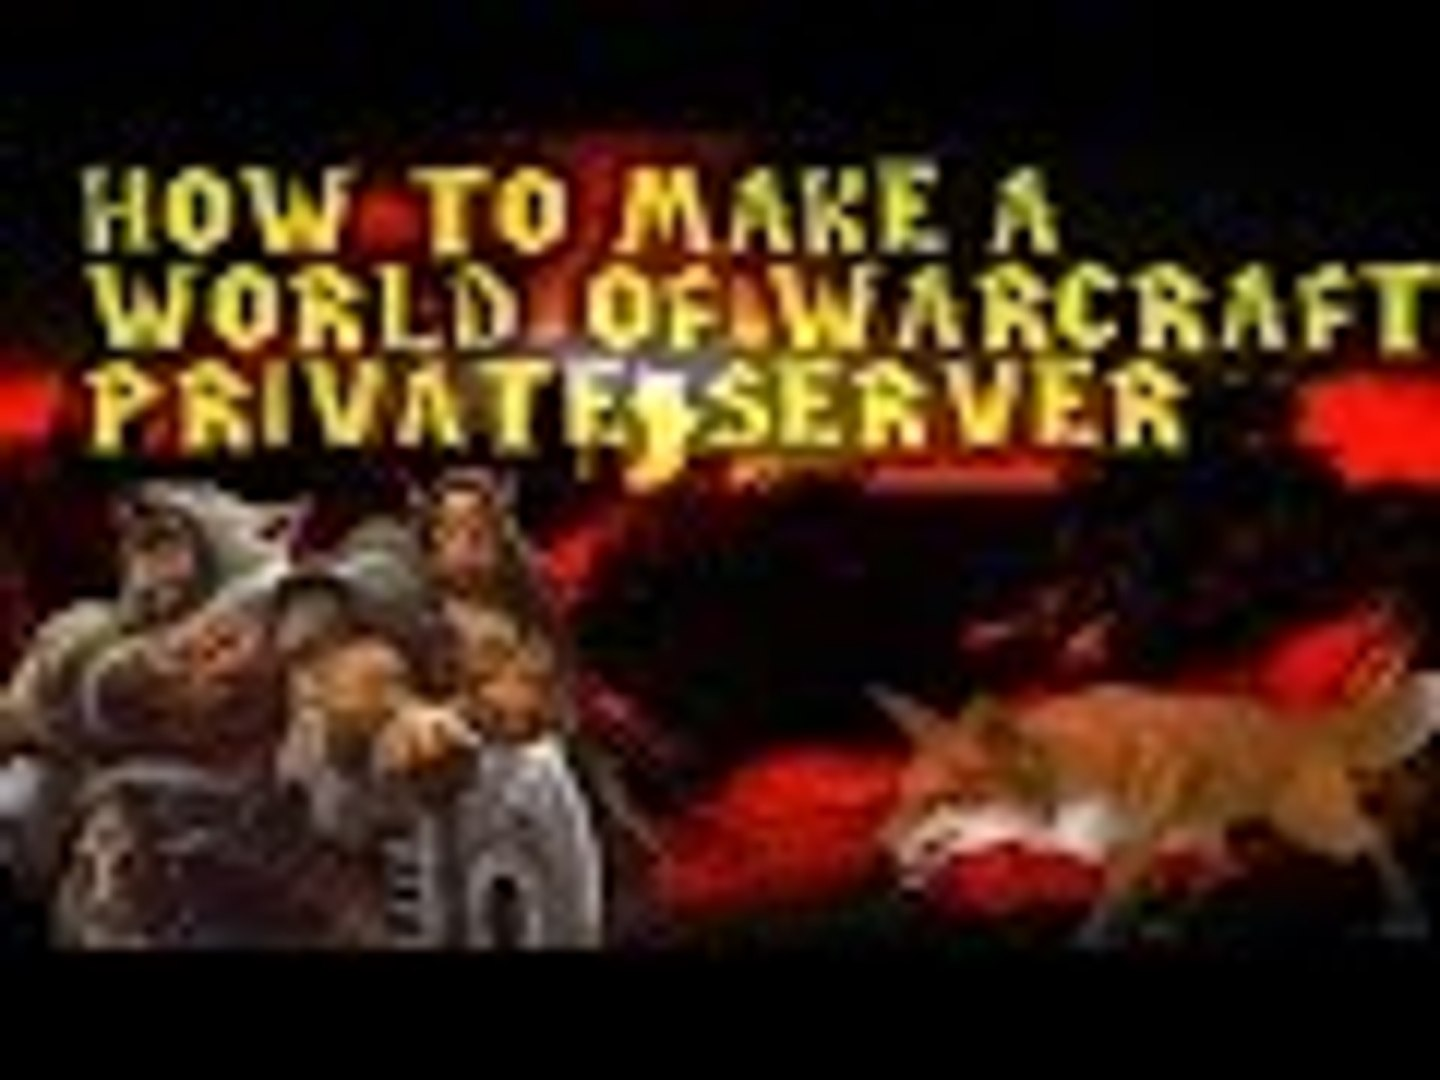 How To Make A World of Warcraft 6 2 4 Private Server